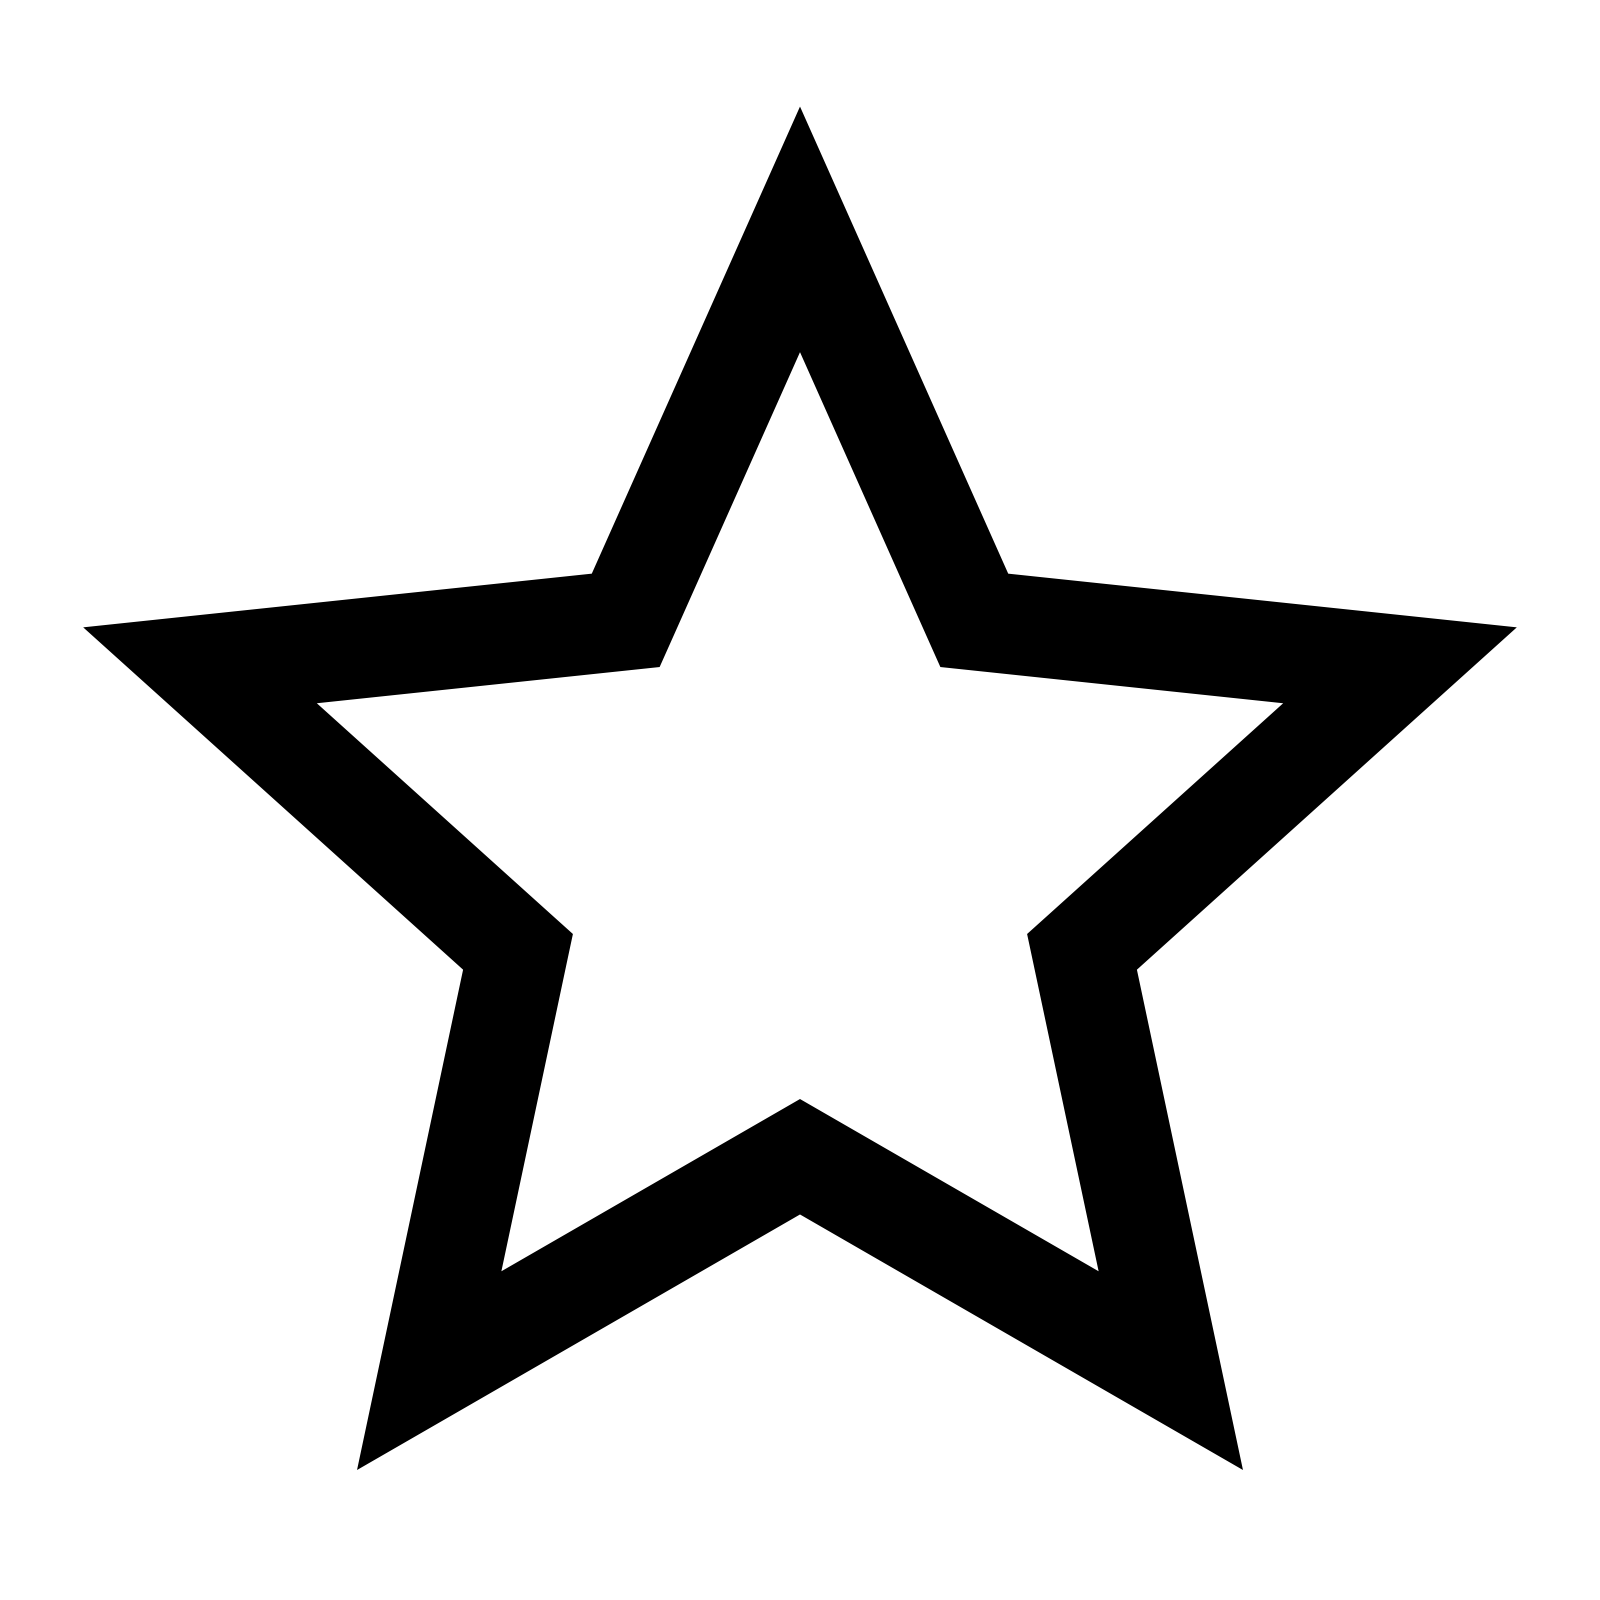 Star Icon - Star, Transparent background PNG HD thumbnail